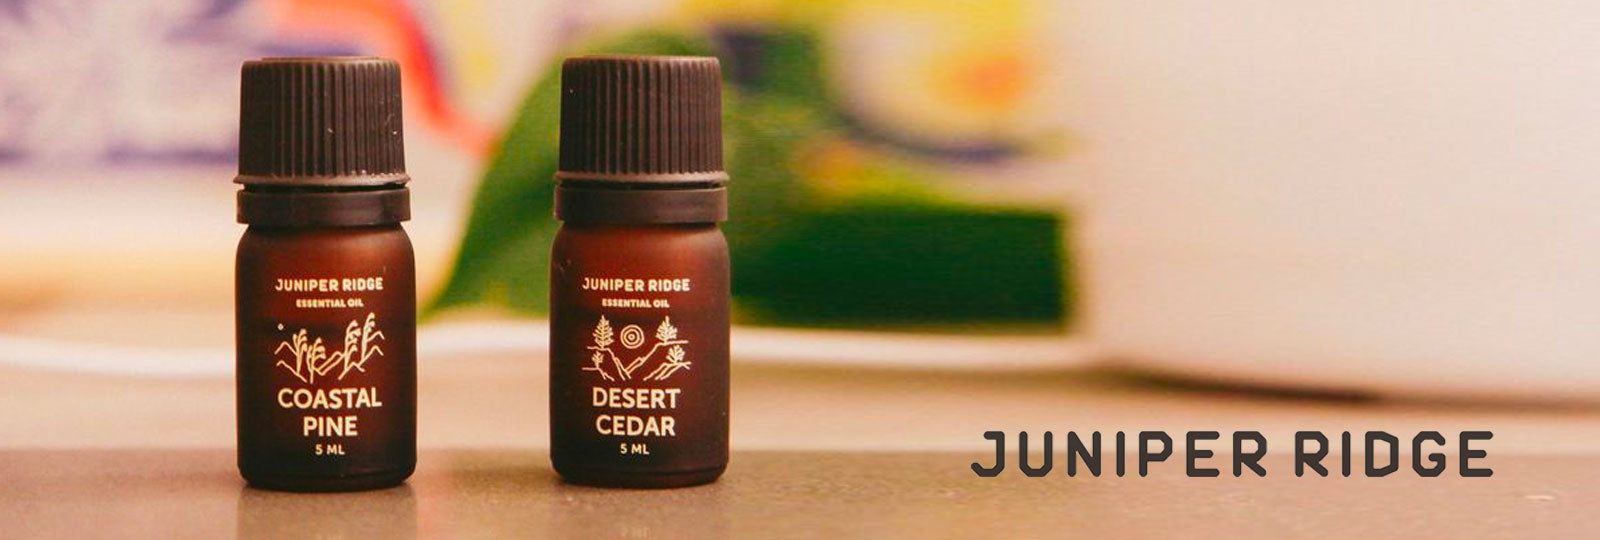 Juniper Ridge available at Sportique